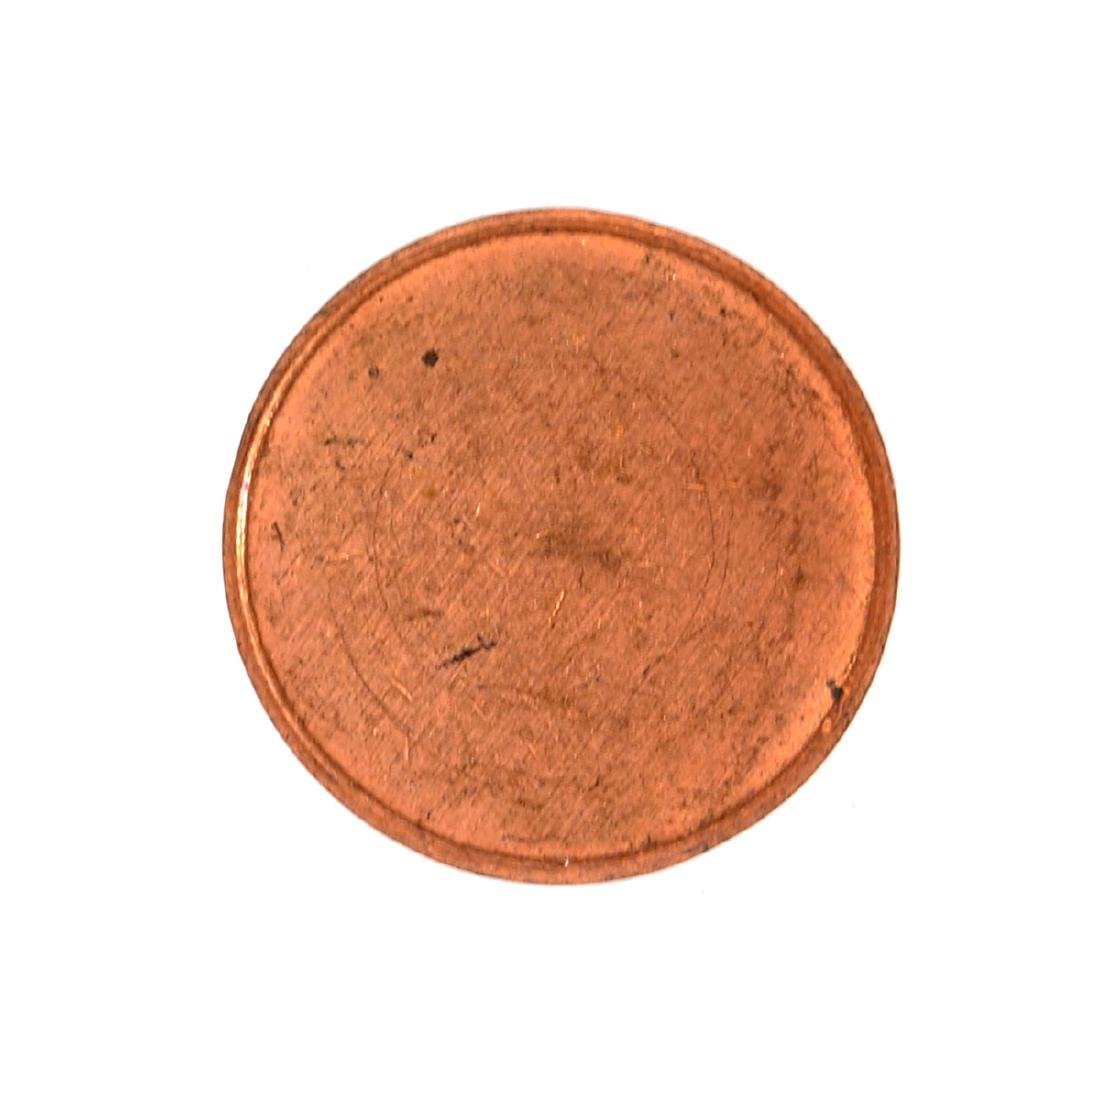 Mint U.S. 1 Cent Blank Planchet Coin - 2